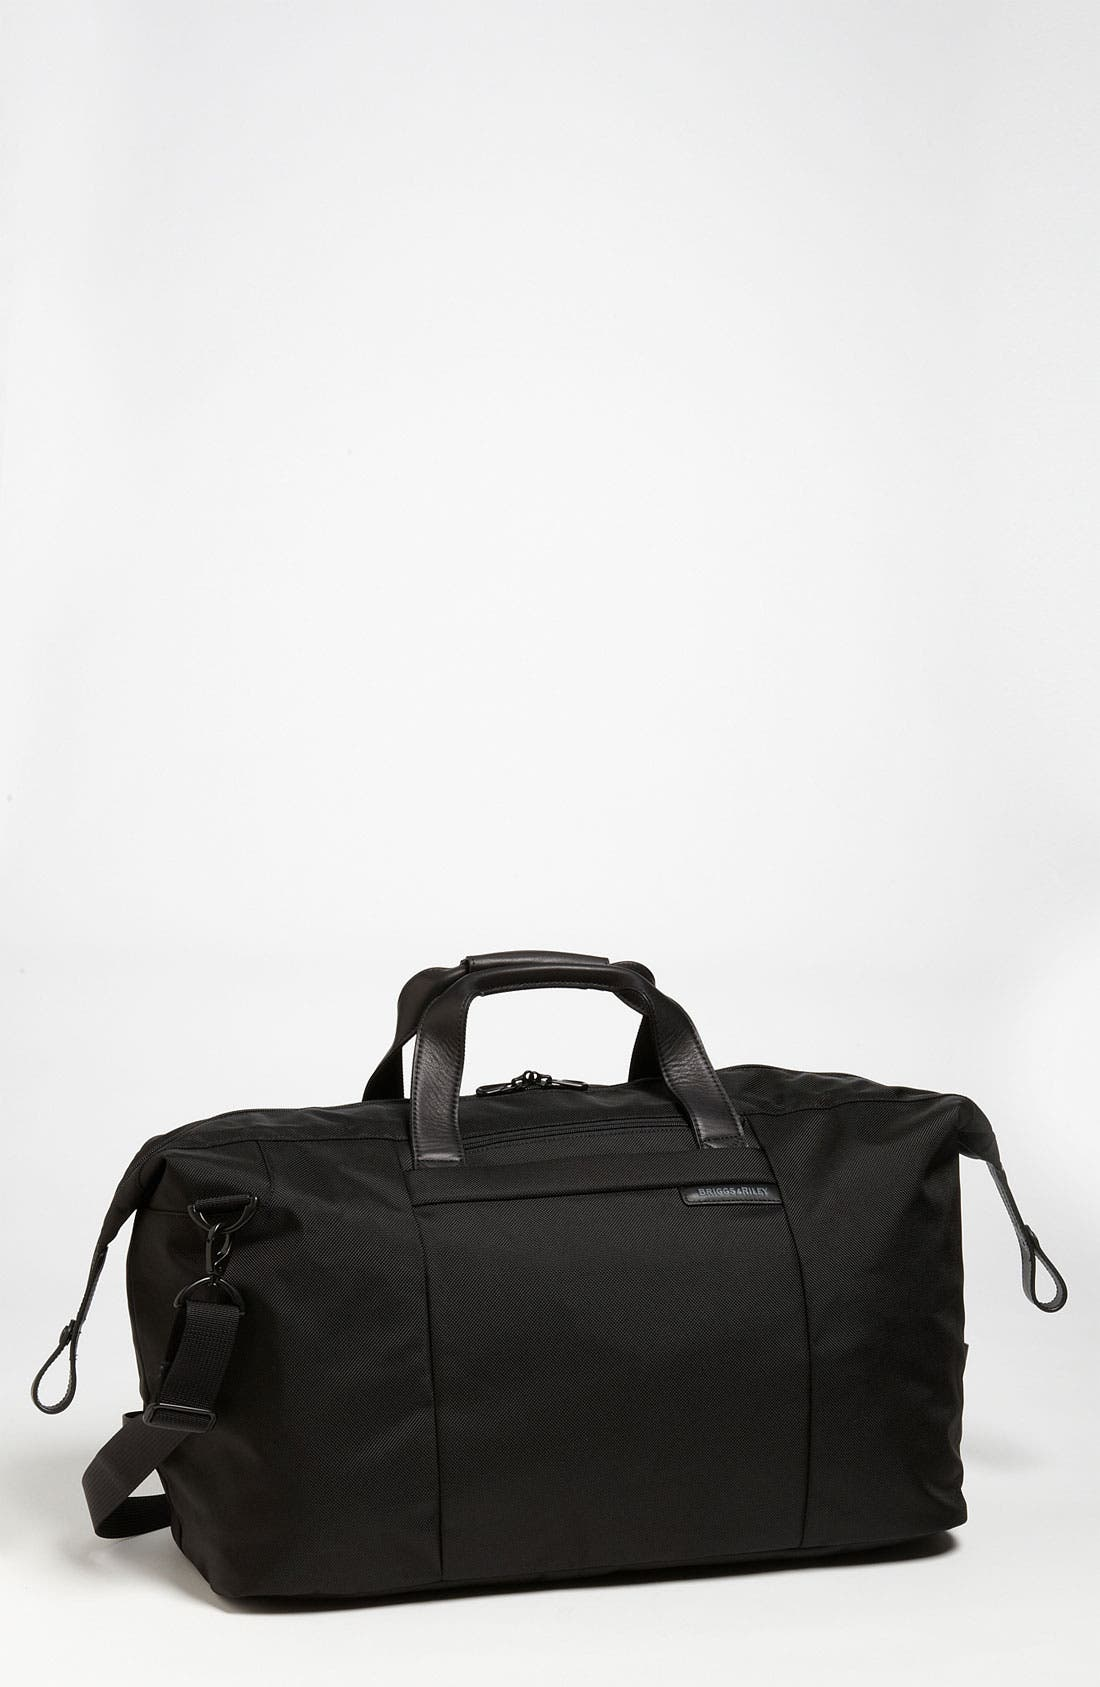 Alternate Image 1 Selected - Briggs & Riley 'Extra Large Baseline' Water Resistant Duffel Bag (22 Inch)